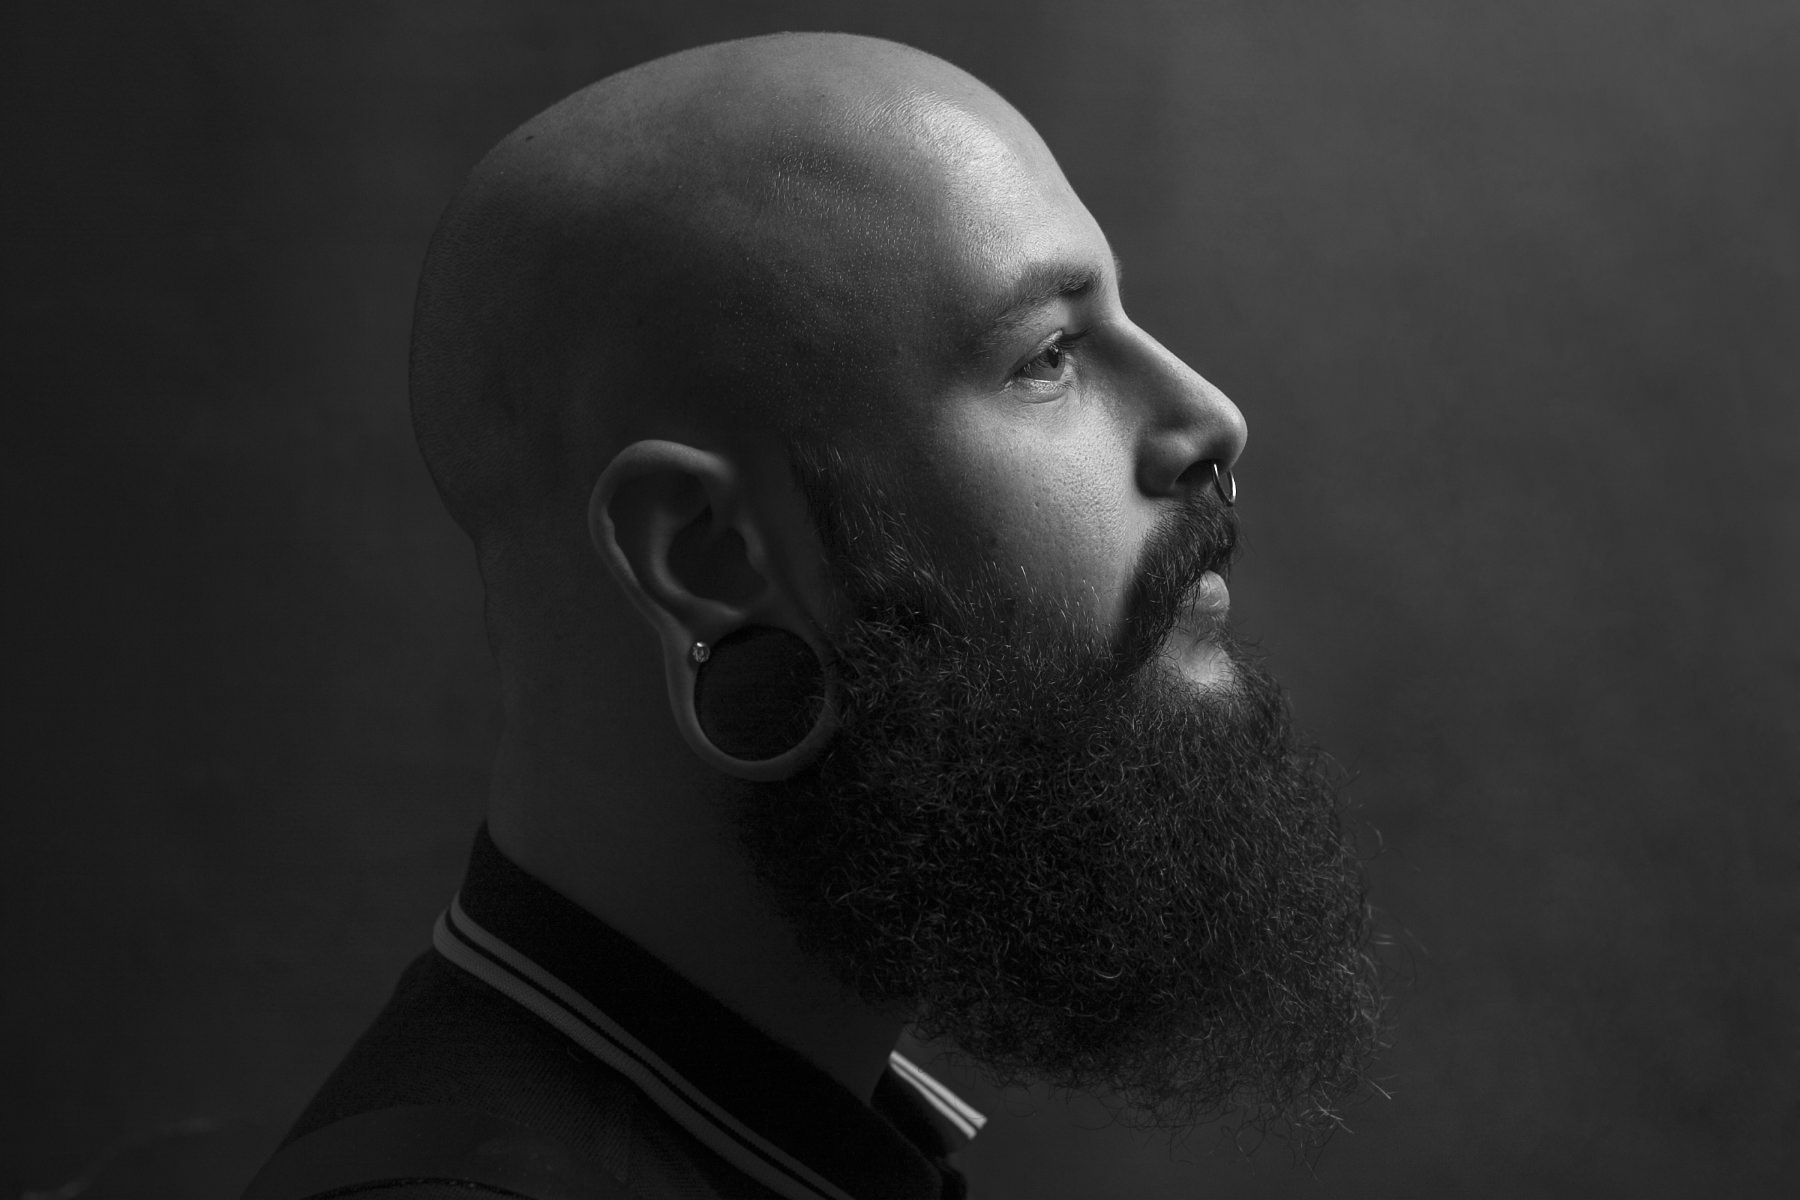 Tattooed and bearded Being As An Ocean singer Joel Quartuccio posing for HM magazine cover